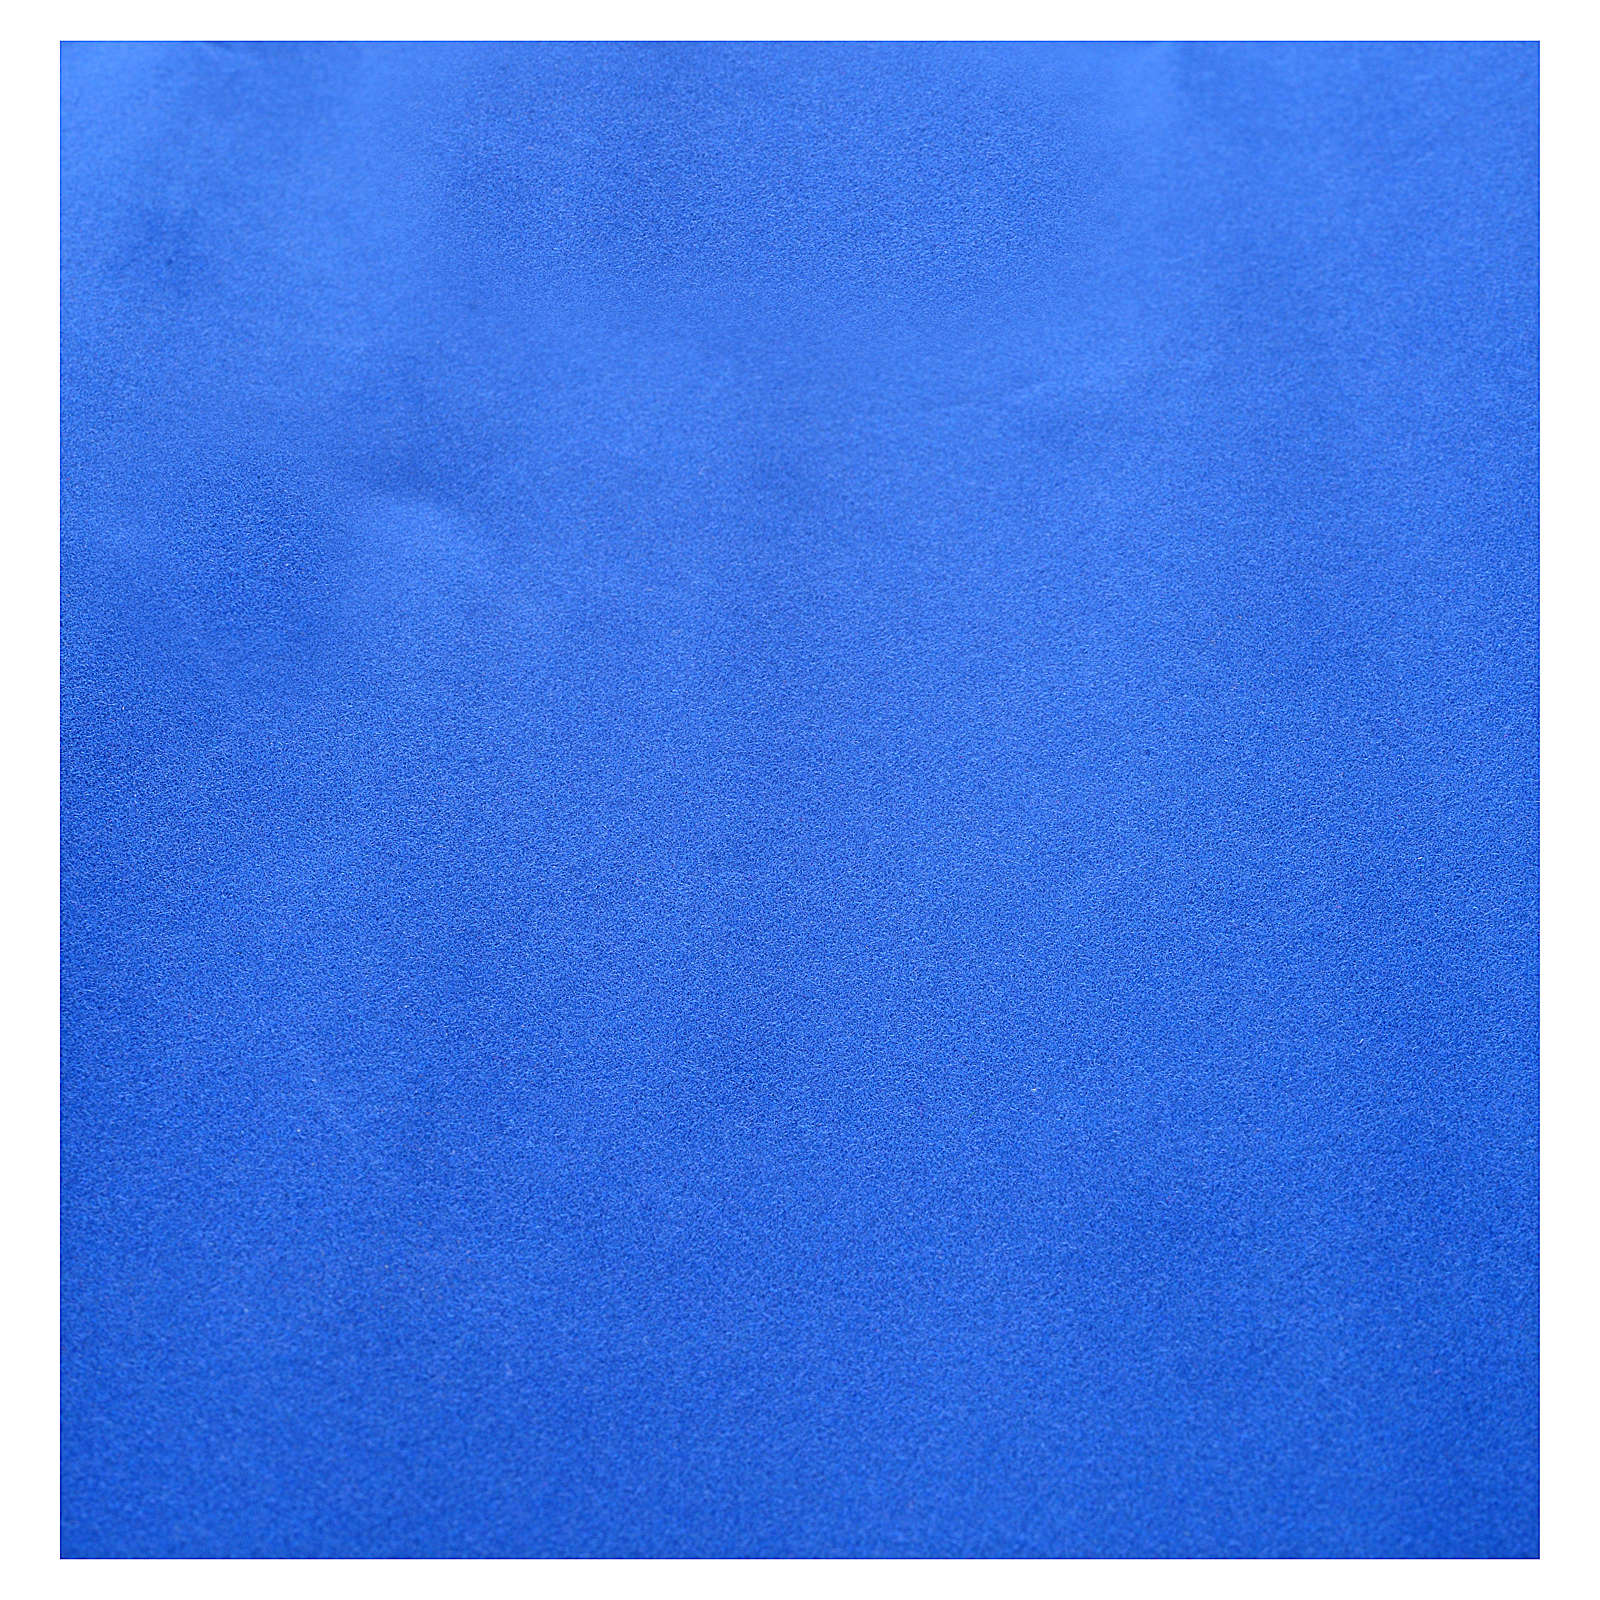 Nativity scene backdrop, roll of velvet blue paper 70 x 50cm 4